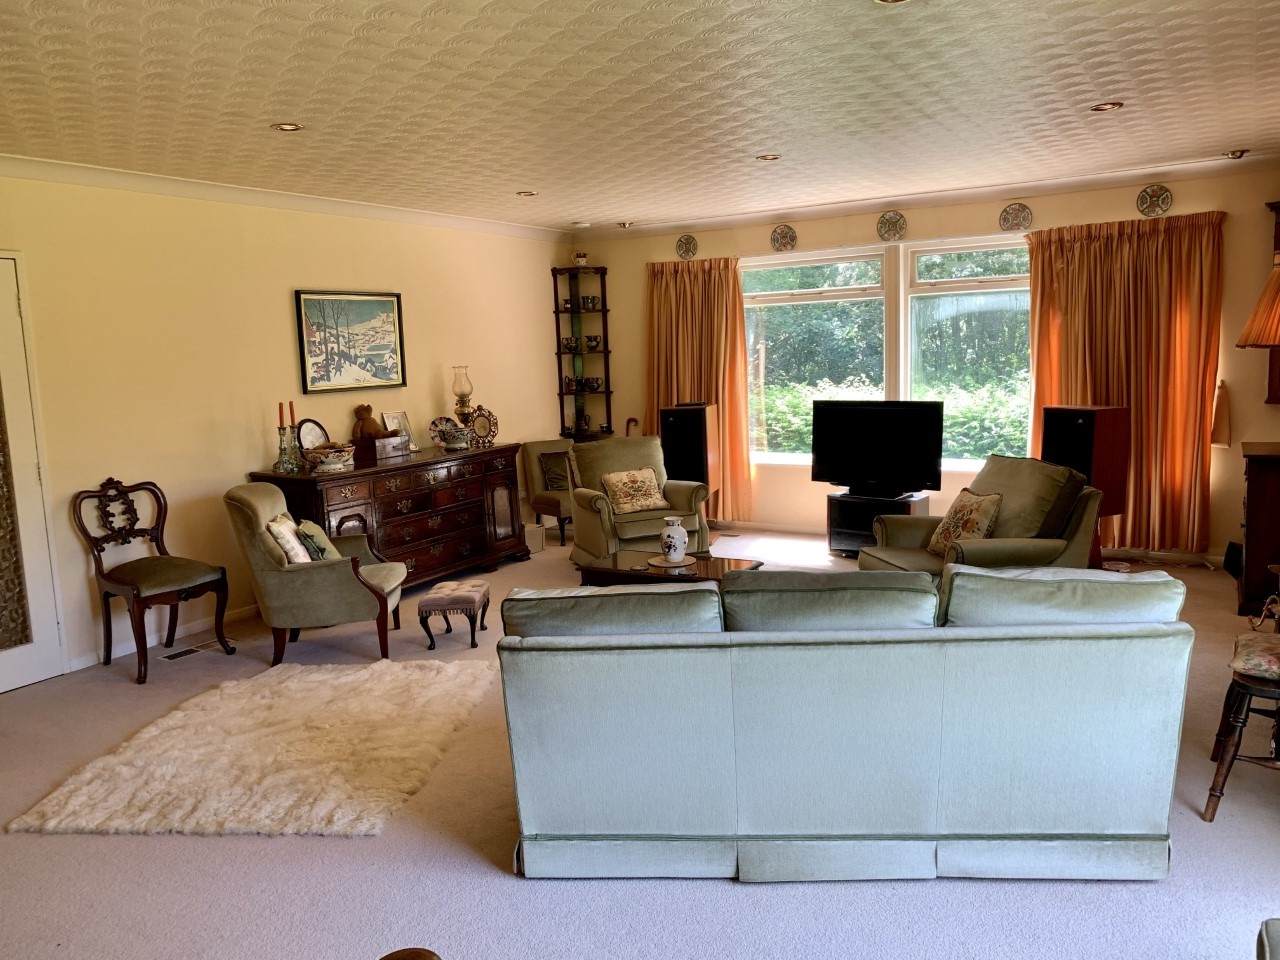 4 bedroom detached bungalow For Sale in Todmorden - Photograph 8.